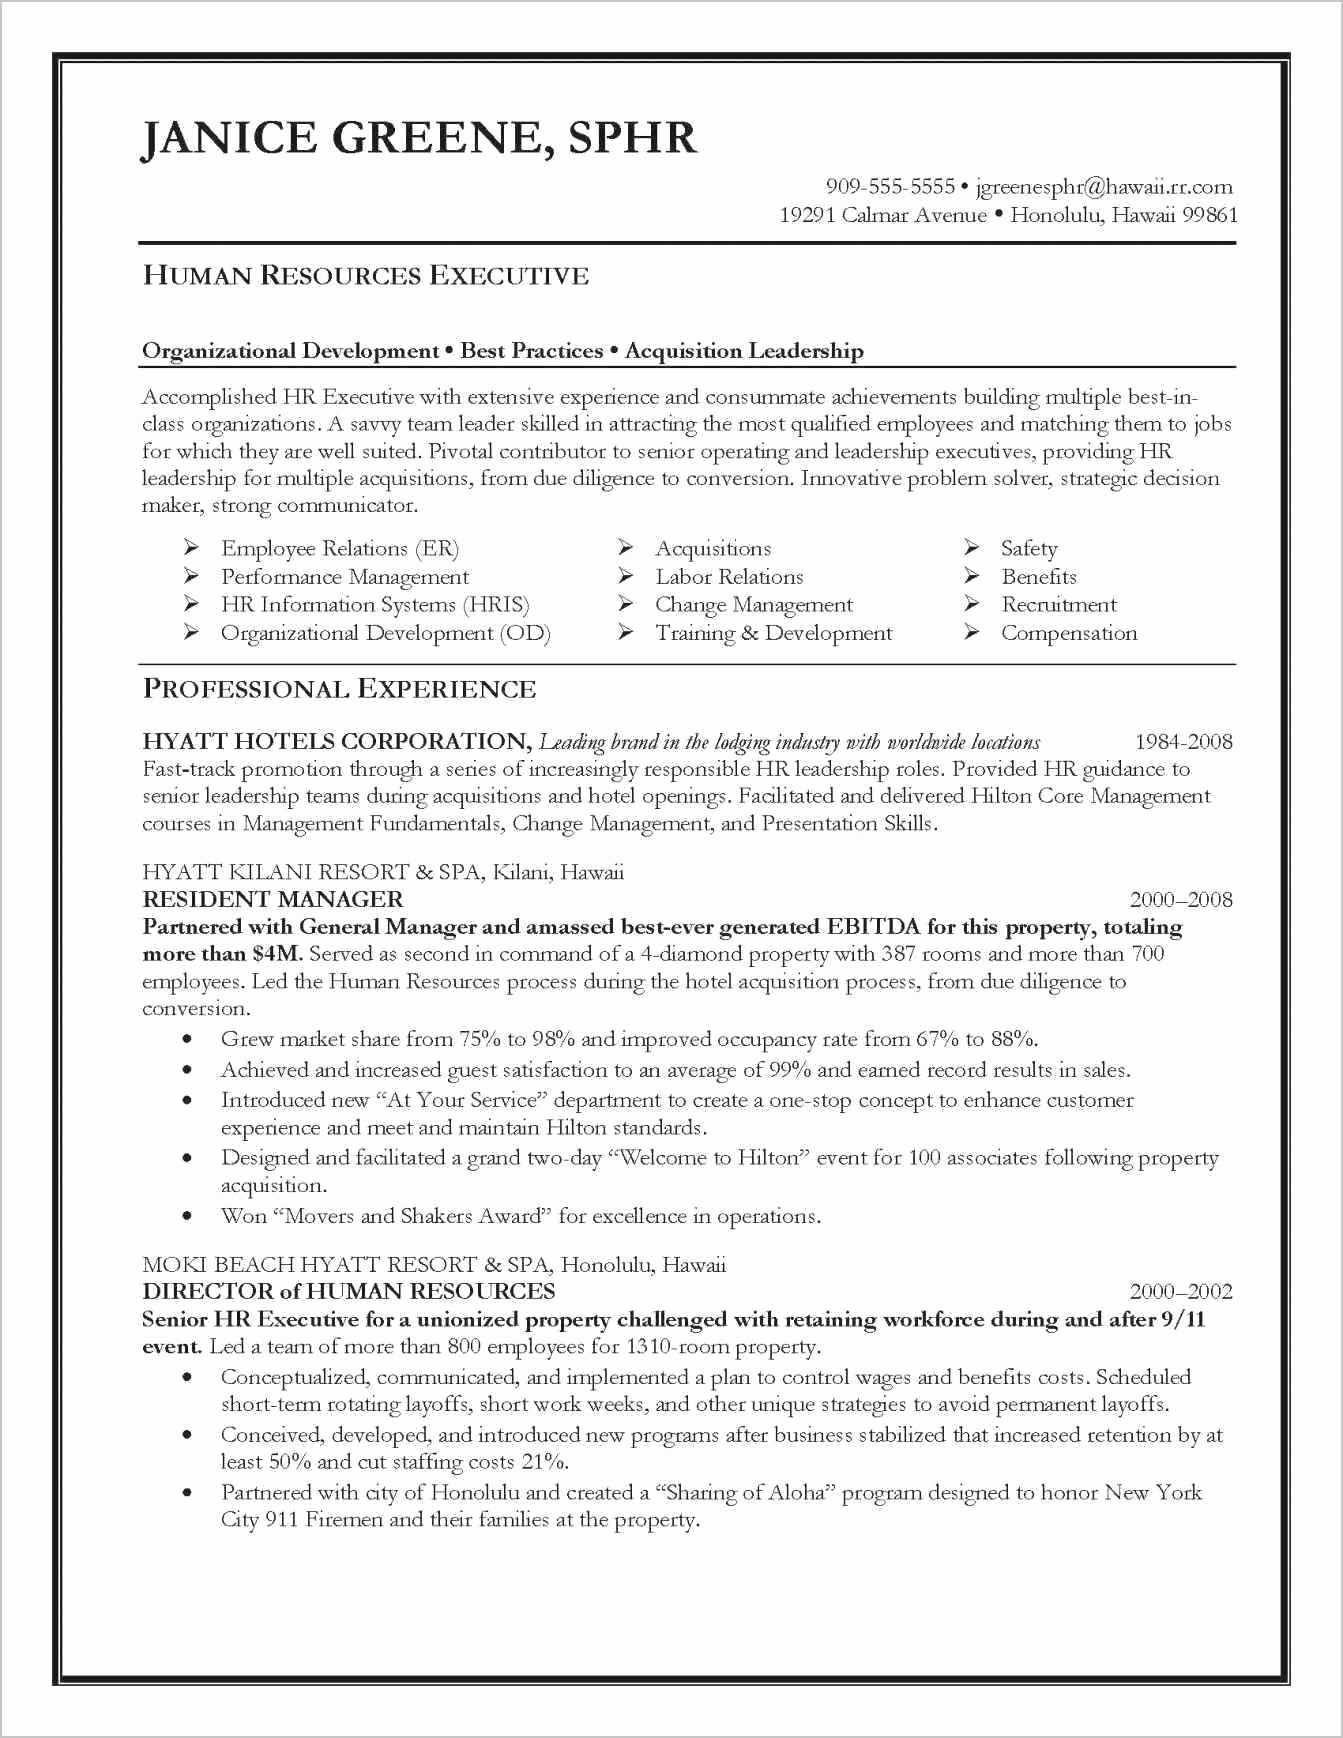 Federal Resume Writers - 18 Resume for Federal Jobs